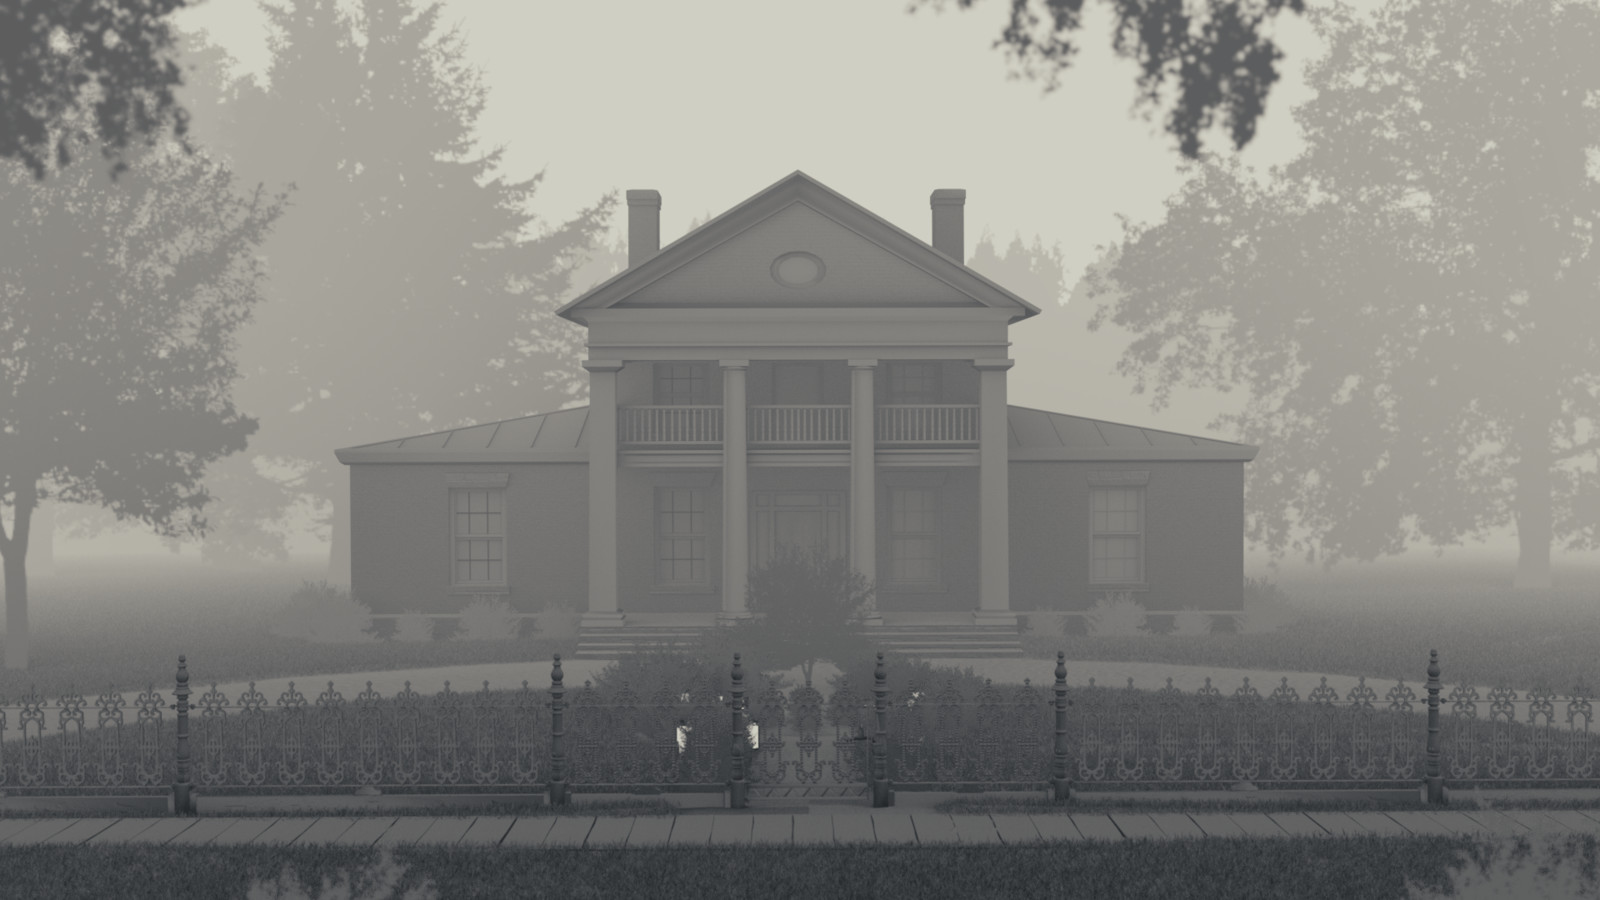 An 'atmospheric' render (AO and Mist passes)